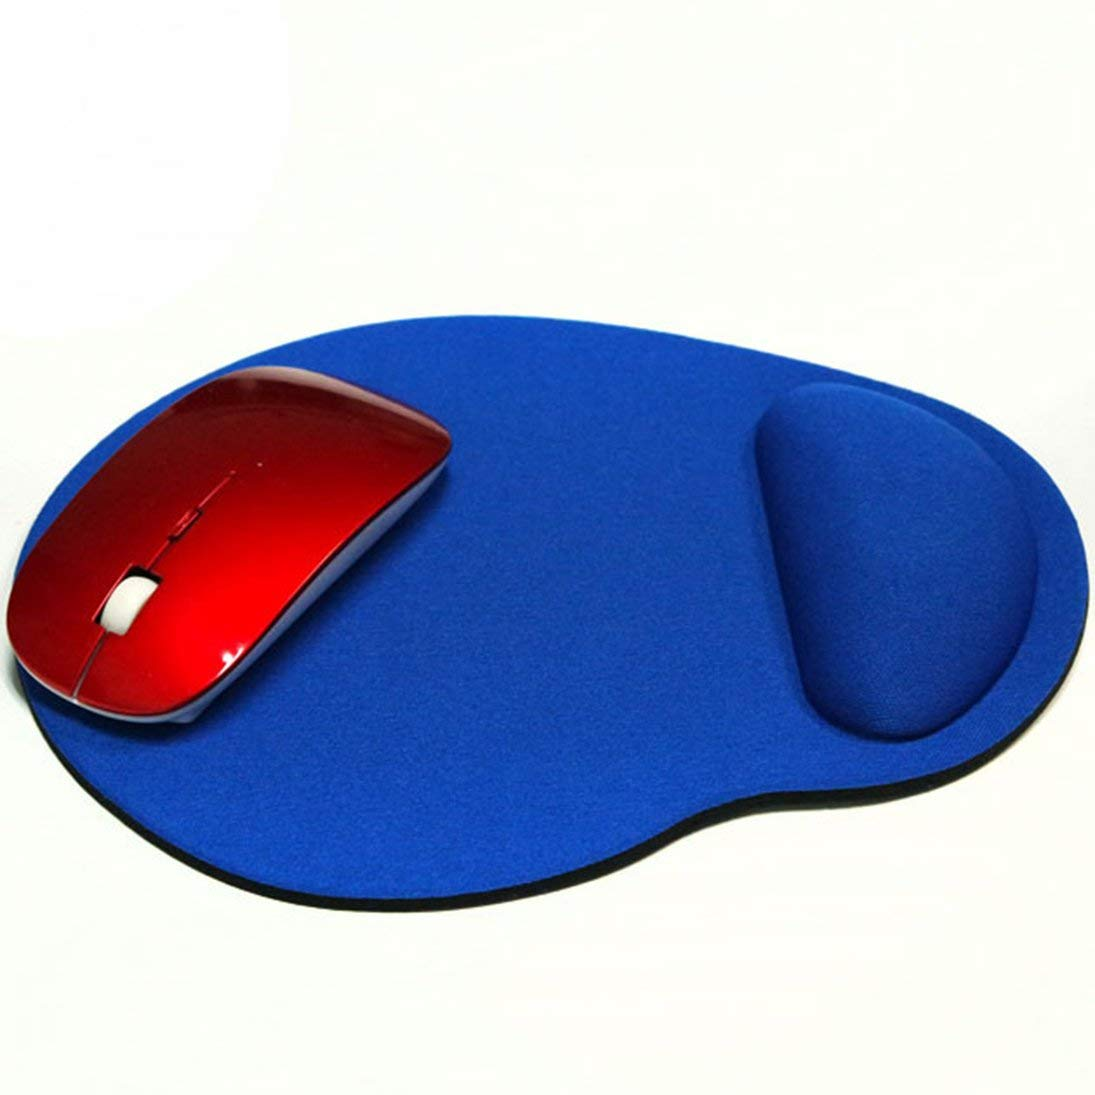 Lightweight Ergonomic Memory Foam Pain Relief Non-Slip PU Base Mouse Mat for Home Office Work Baynne-CAa2 Mouse Pad with Gel Wrist Rest